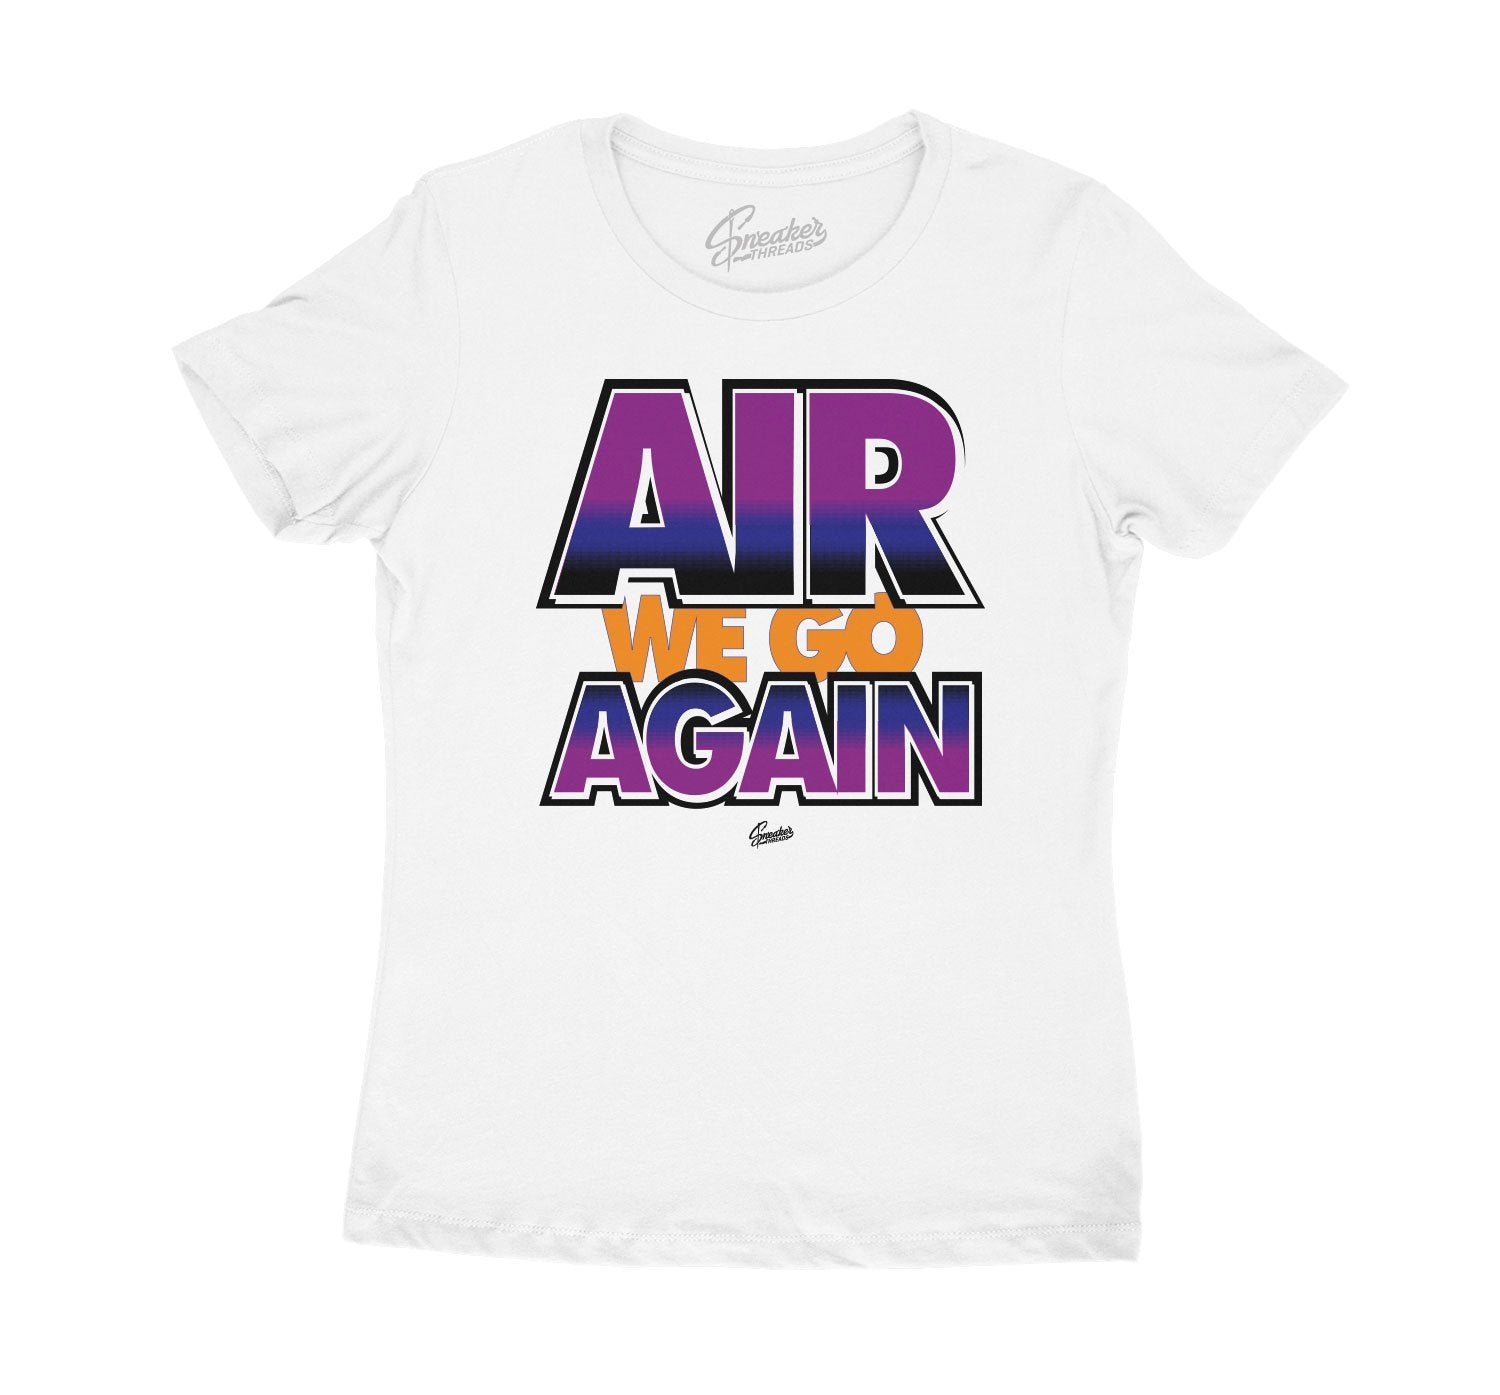 Ladies shirt created to match the Jordan 4 Rush Violet perfect